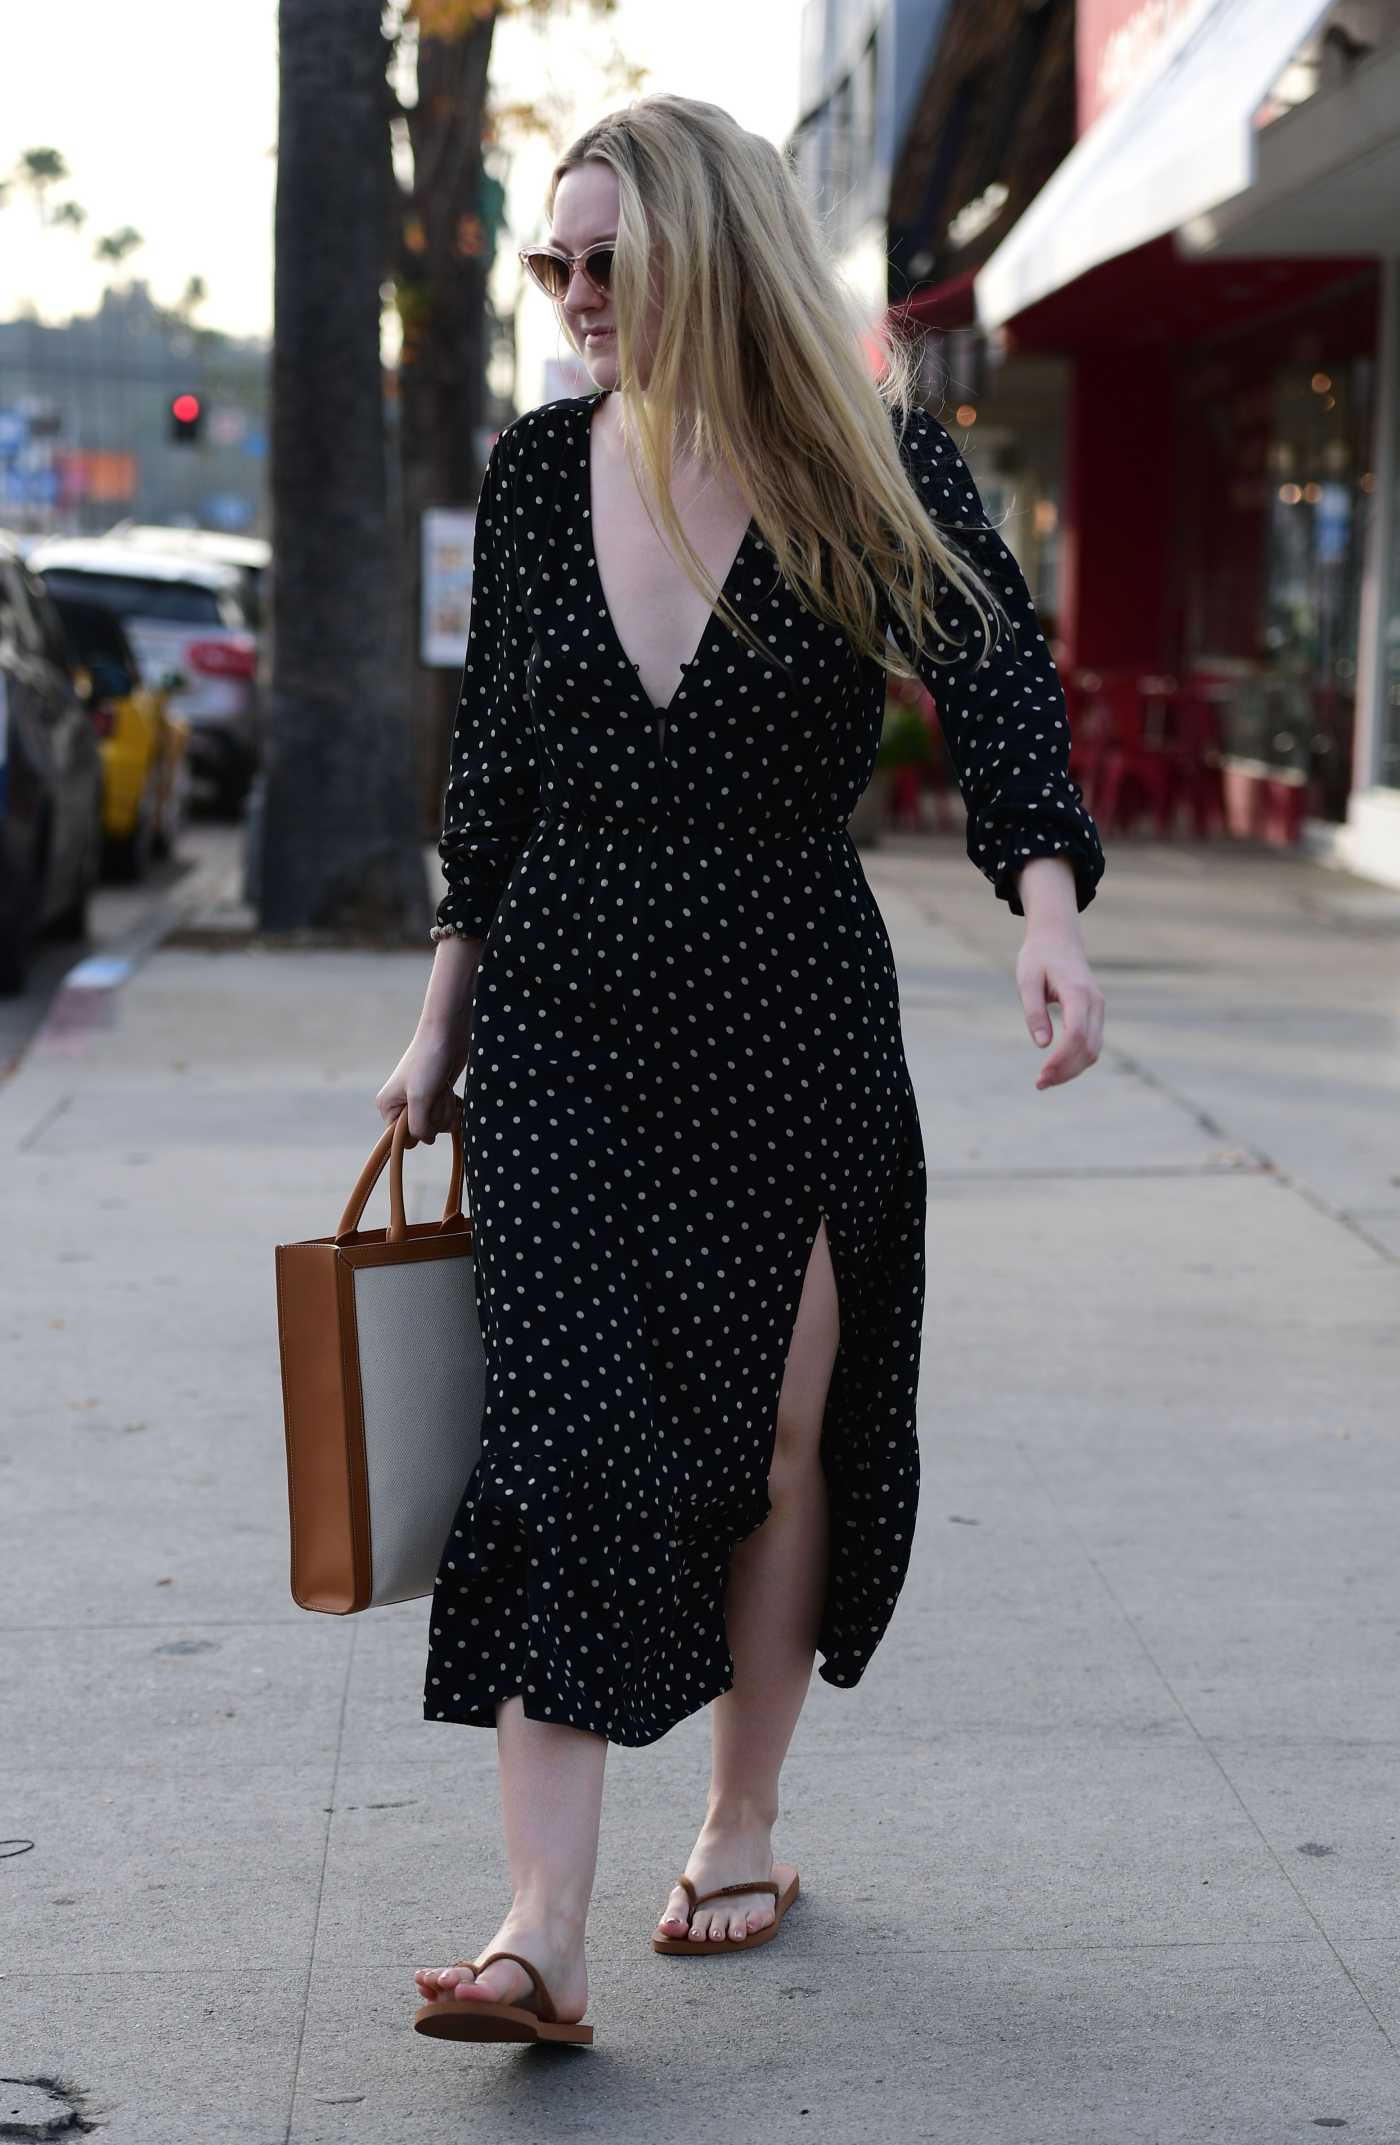 Dakota Fanning in a Black Polka Dot Dress Goes Shopping in LA 01/03/2020